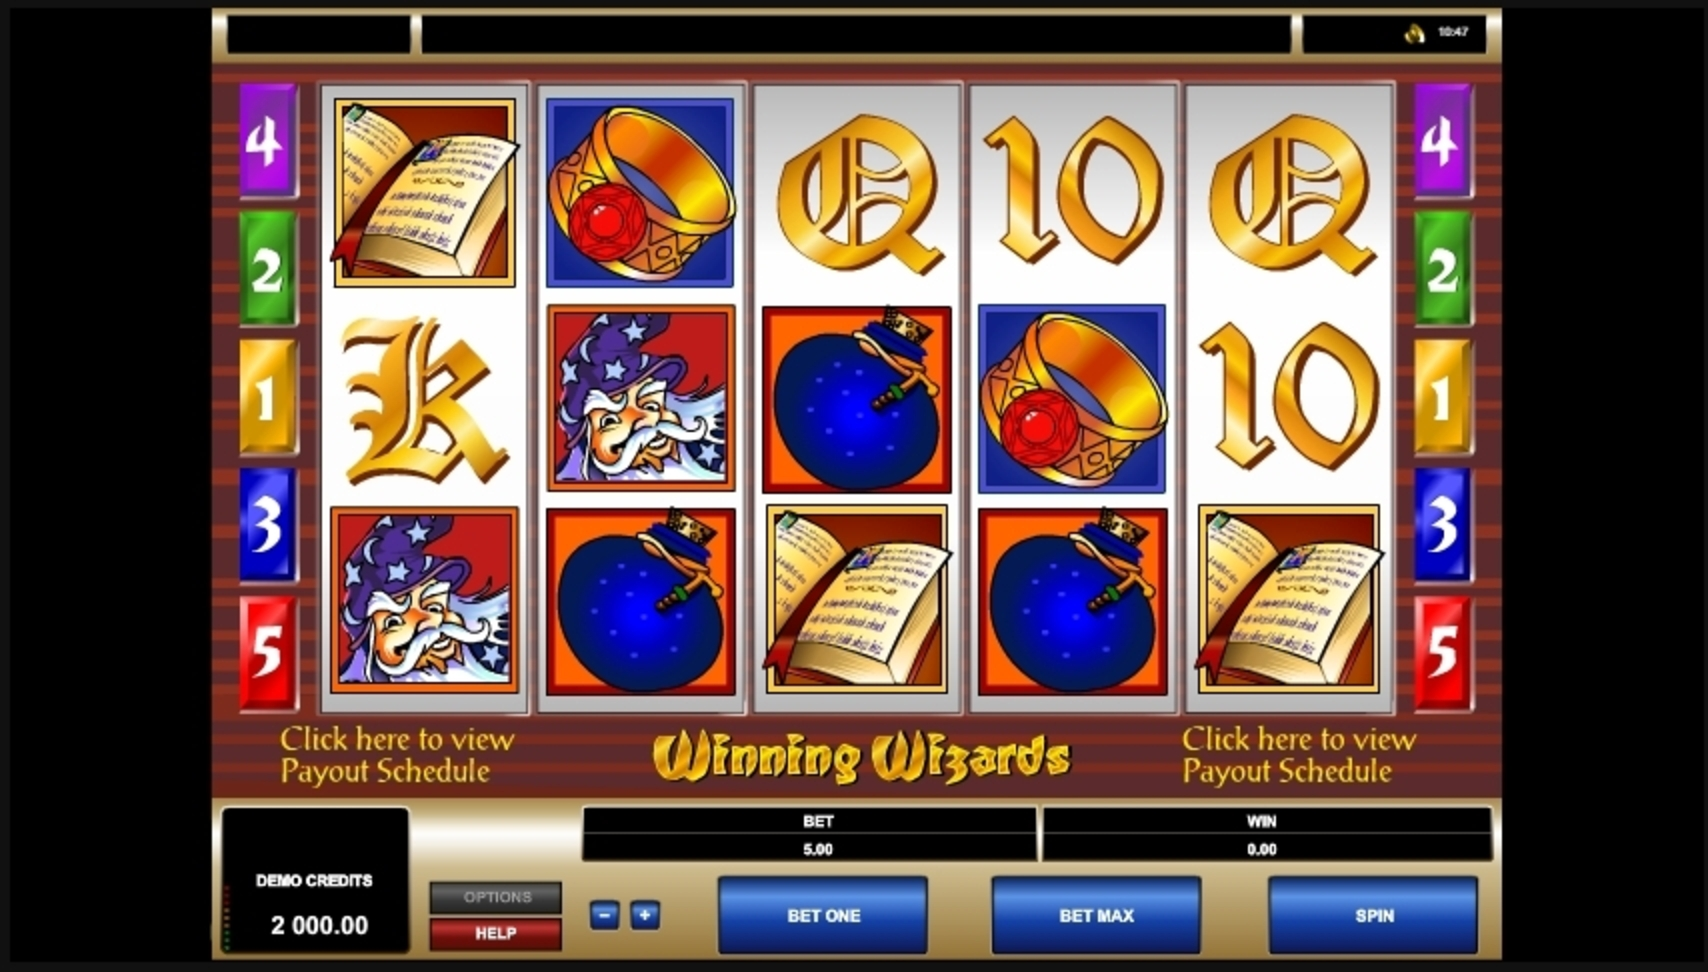 Reels in Winning Wizards Slot Game by Microgaming